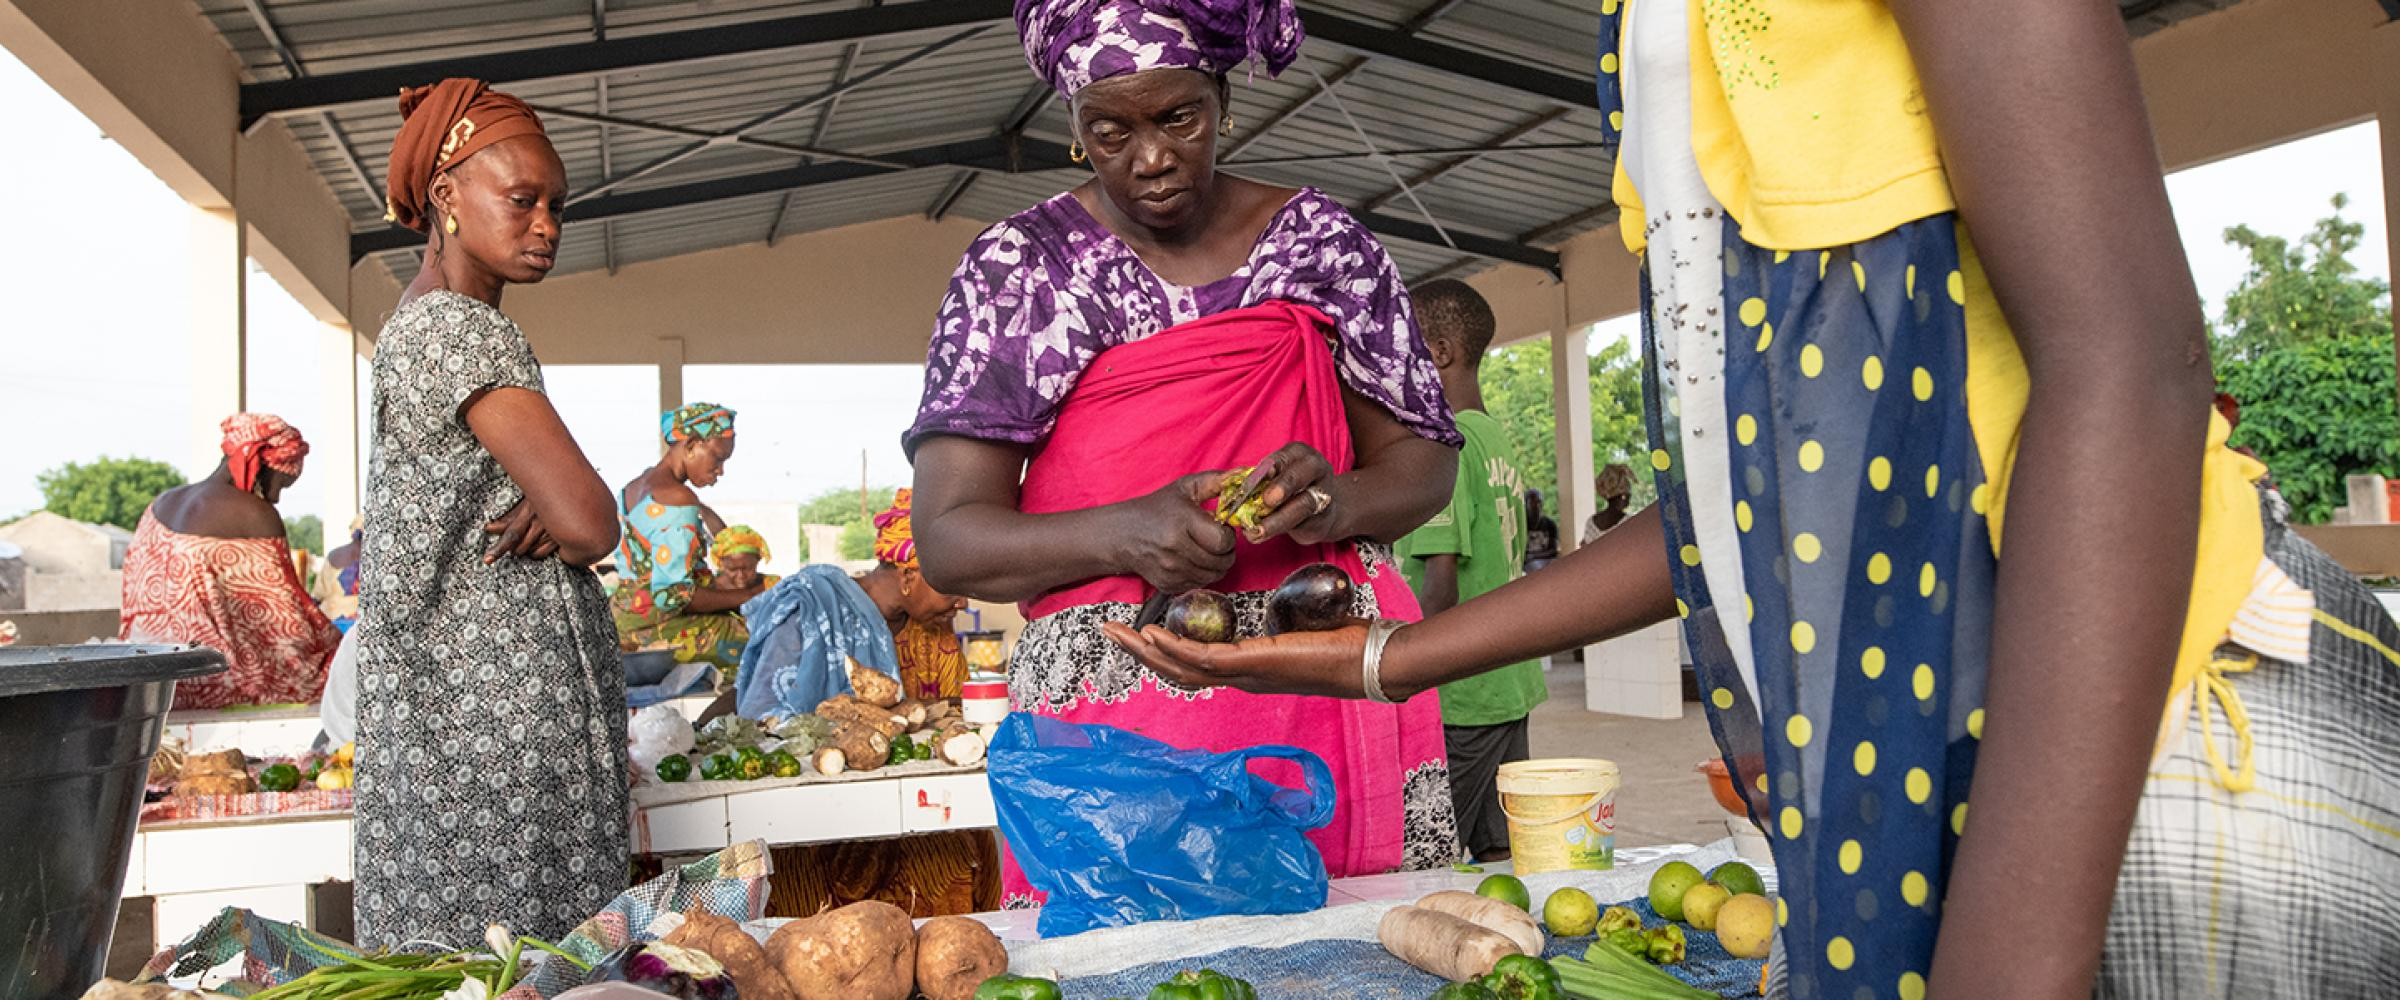 Mme Astou Gueye sells product at her stall with two clients